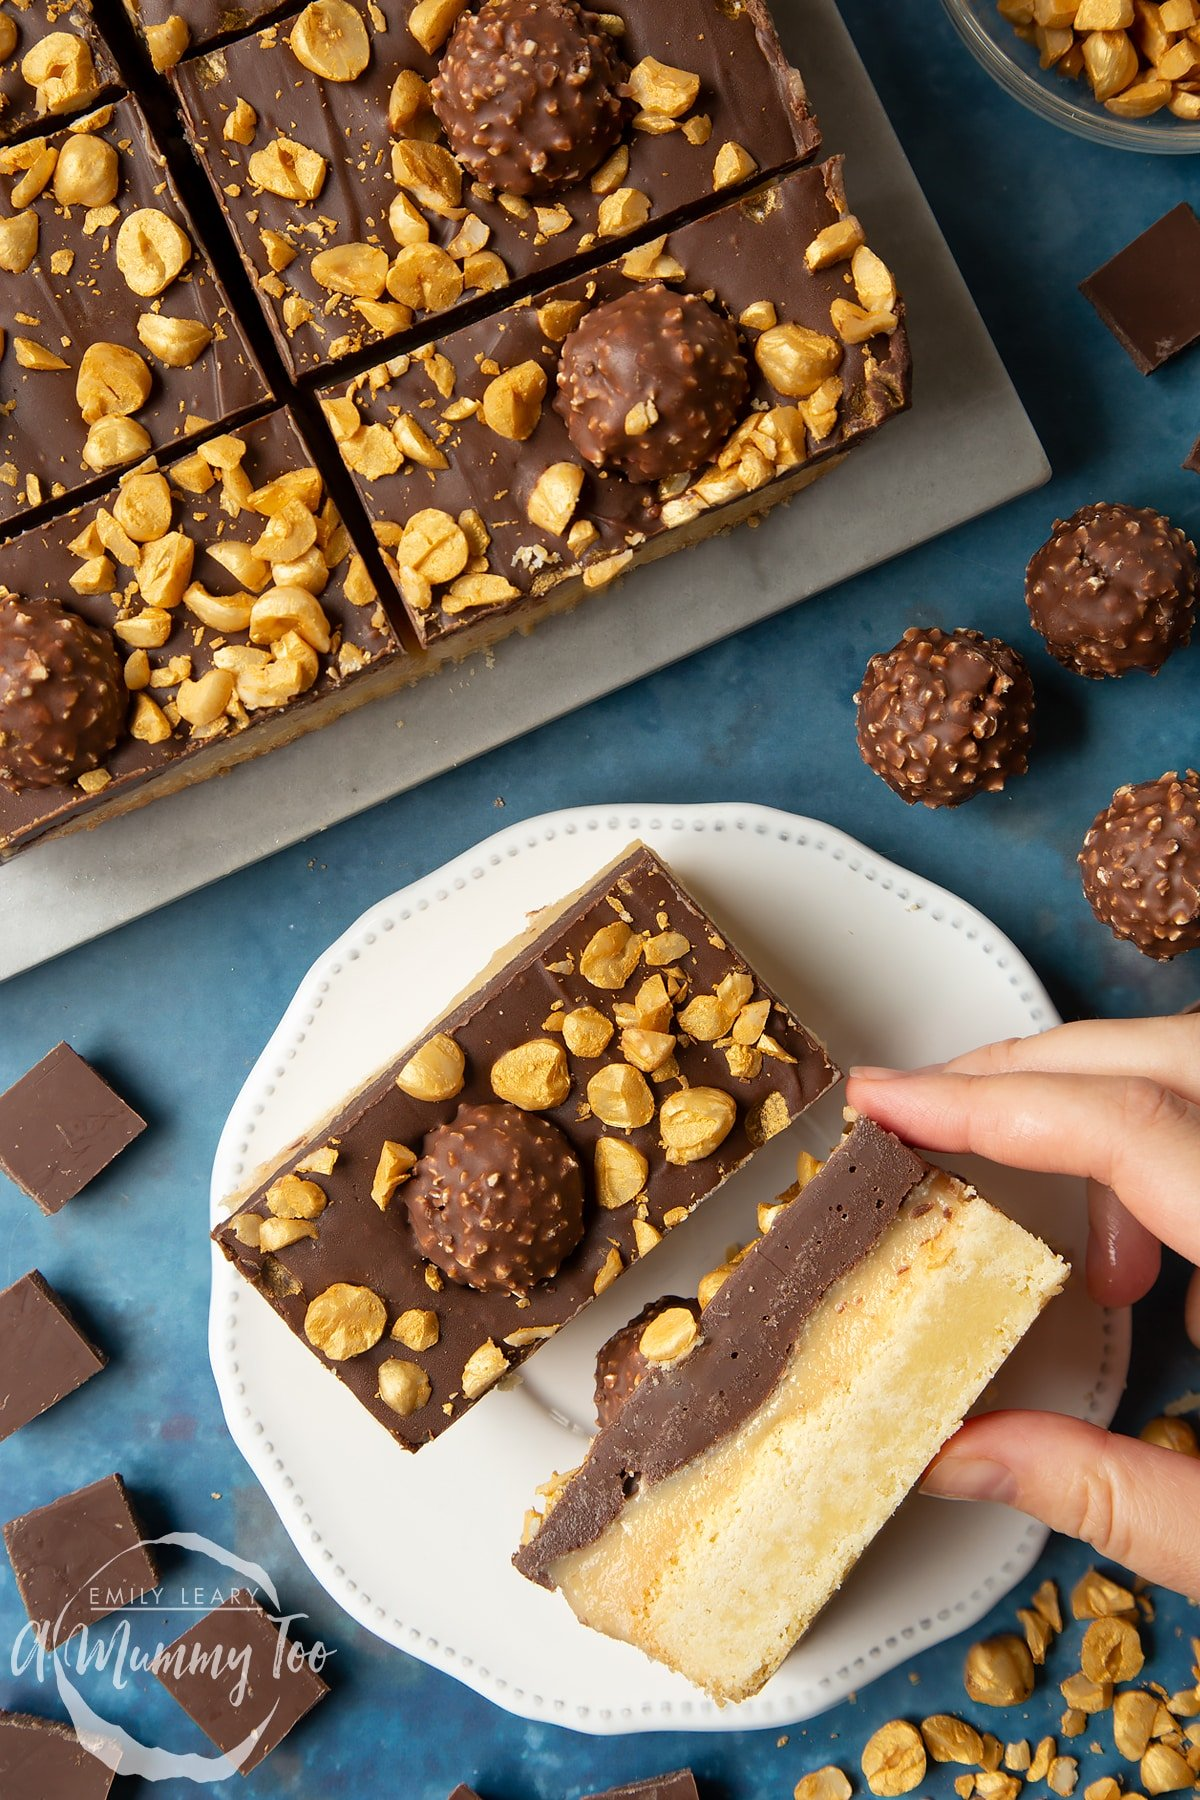 Two Ferrero Rocher slices on a plate. One is turned on its side - a hand reaches for it. To the side is a tray with more slices.